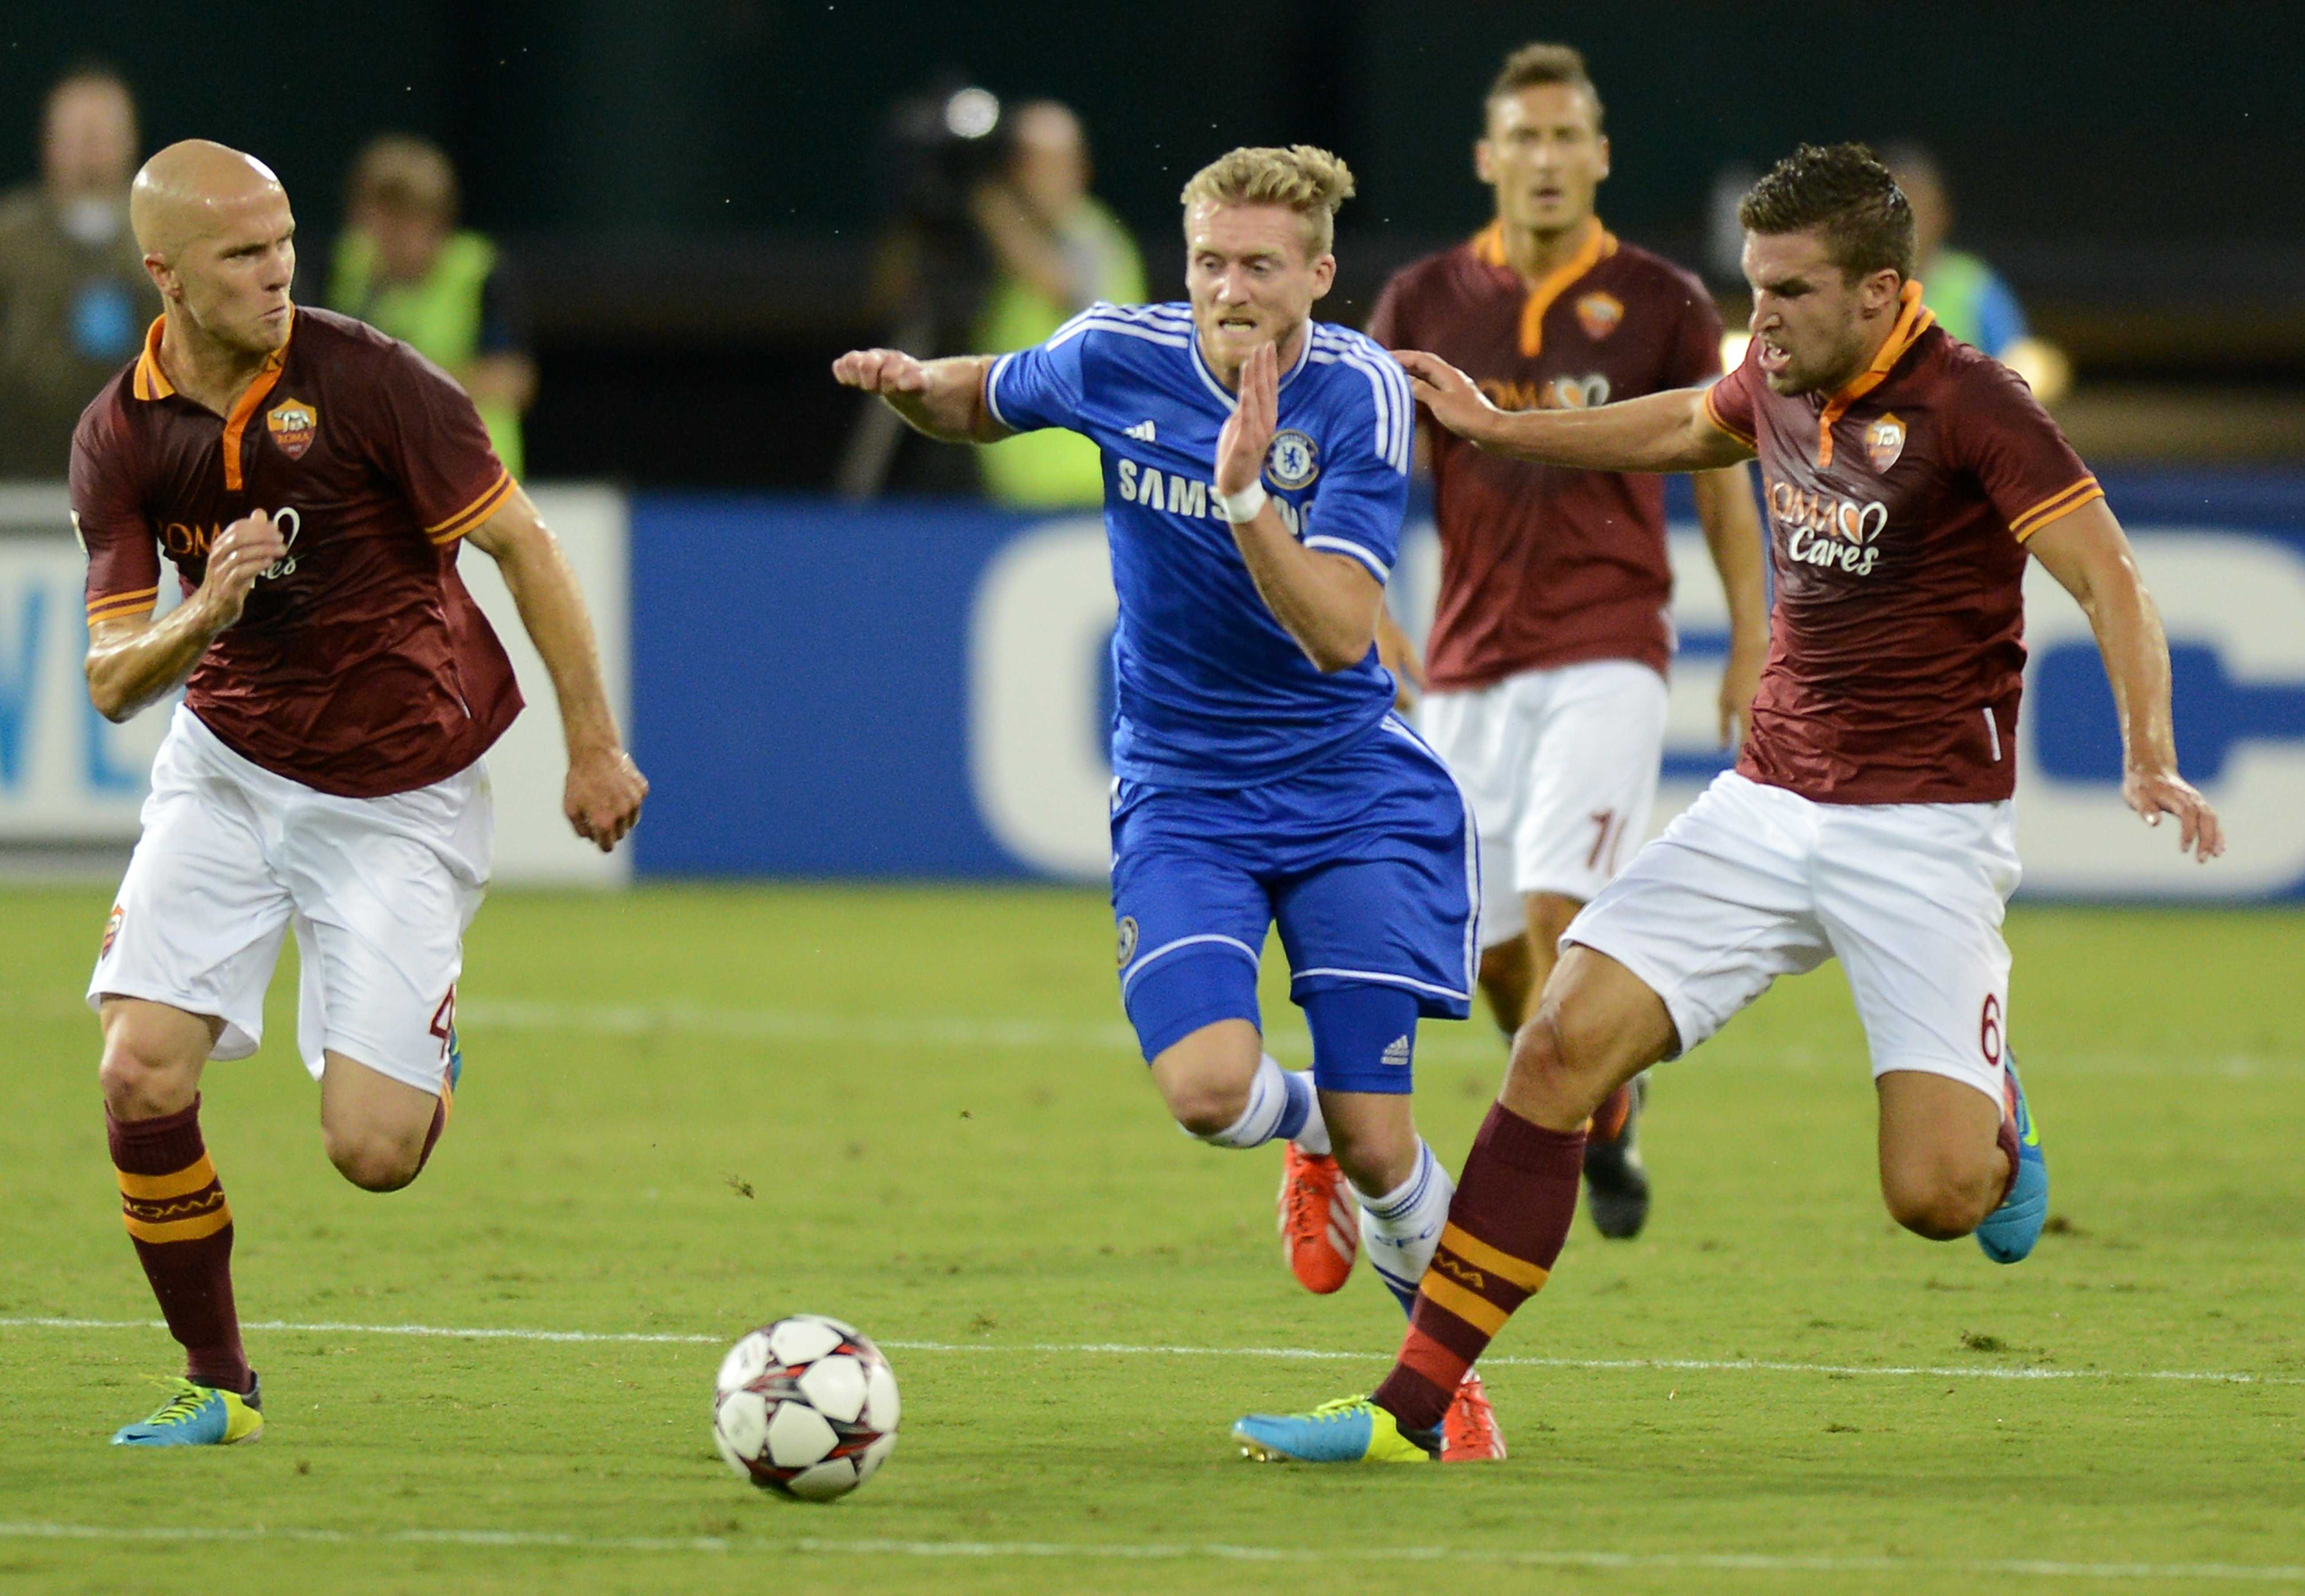 Chelsea FC forward Andre Schurrle, center, breaks between AS Roma midfielder Michael Bradley (4) and AS Roma midfielder Kevin Strootman (6) in the first half of al friendly at RFK Stadium in Washington, D.C., Saturday, August 10, 2013. (Chuck Myers/MCT)